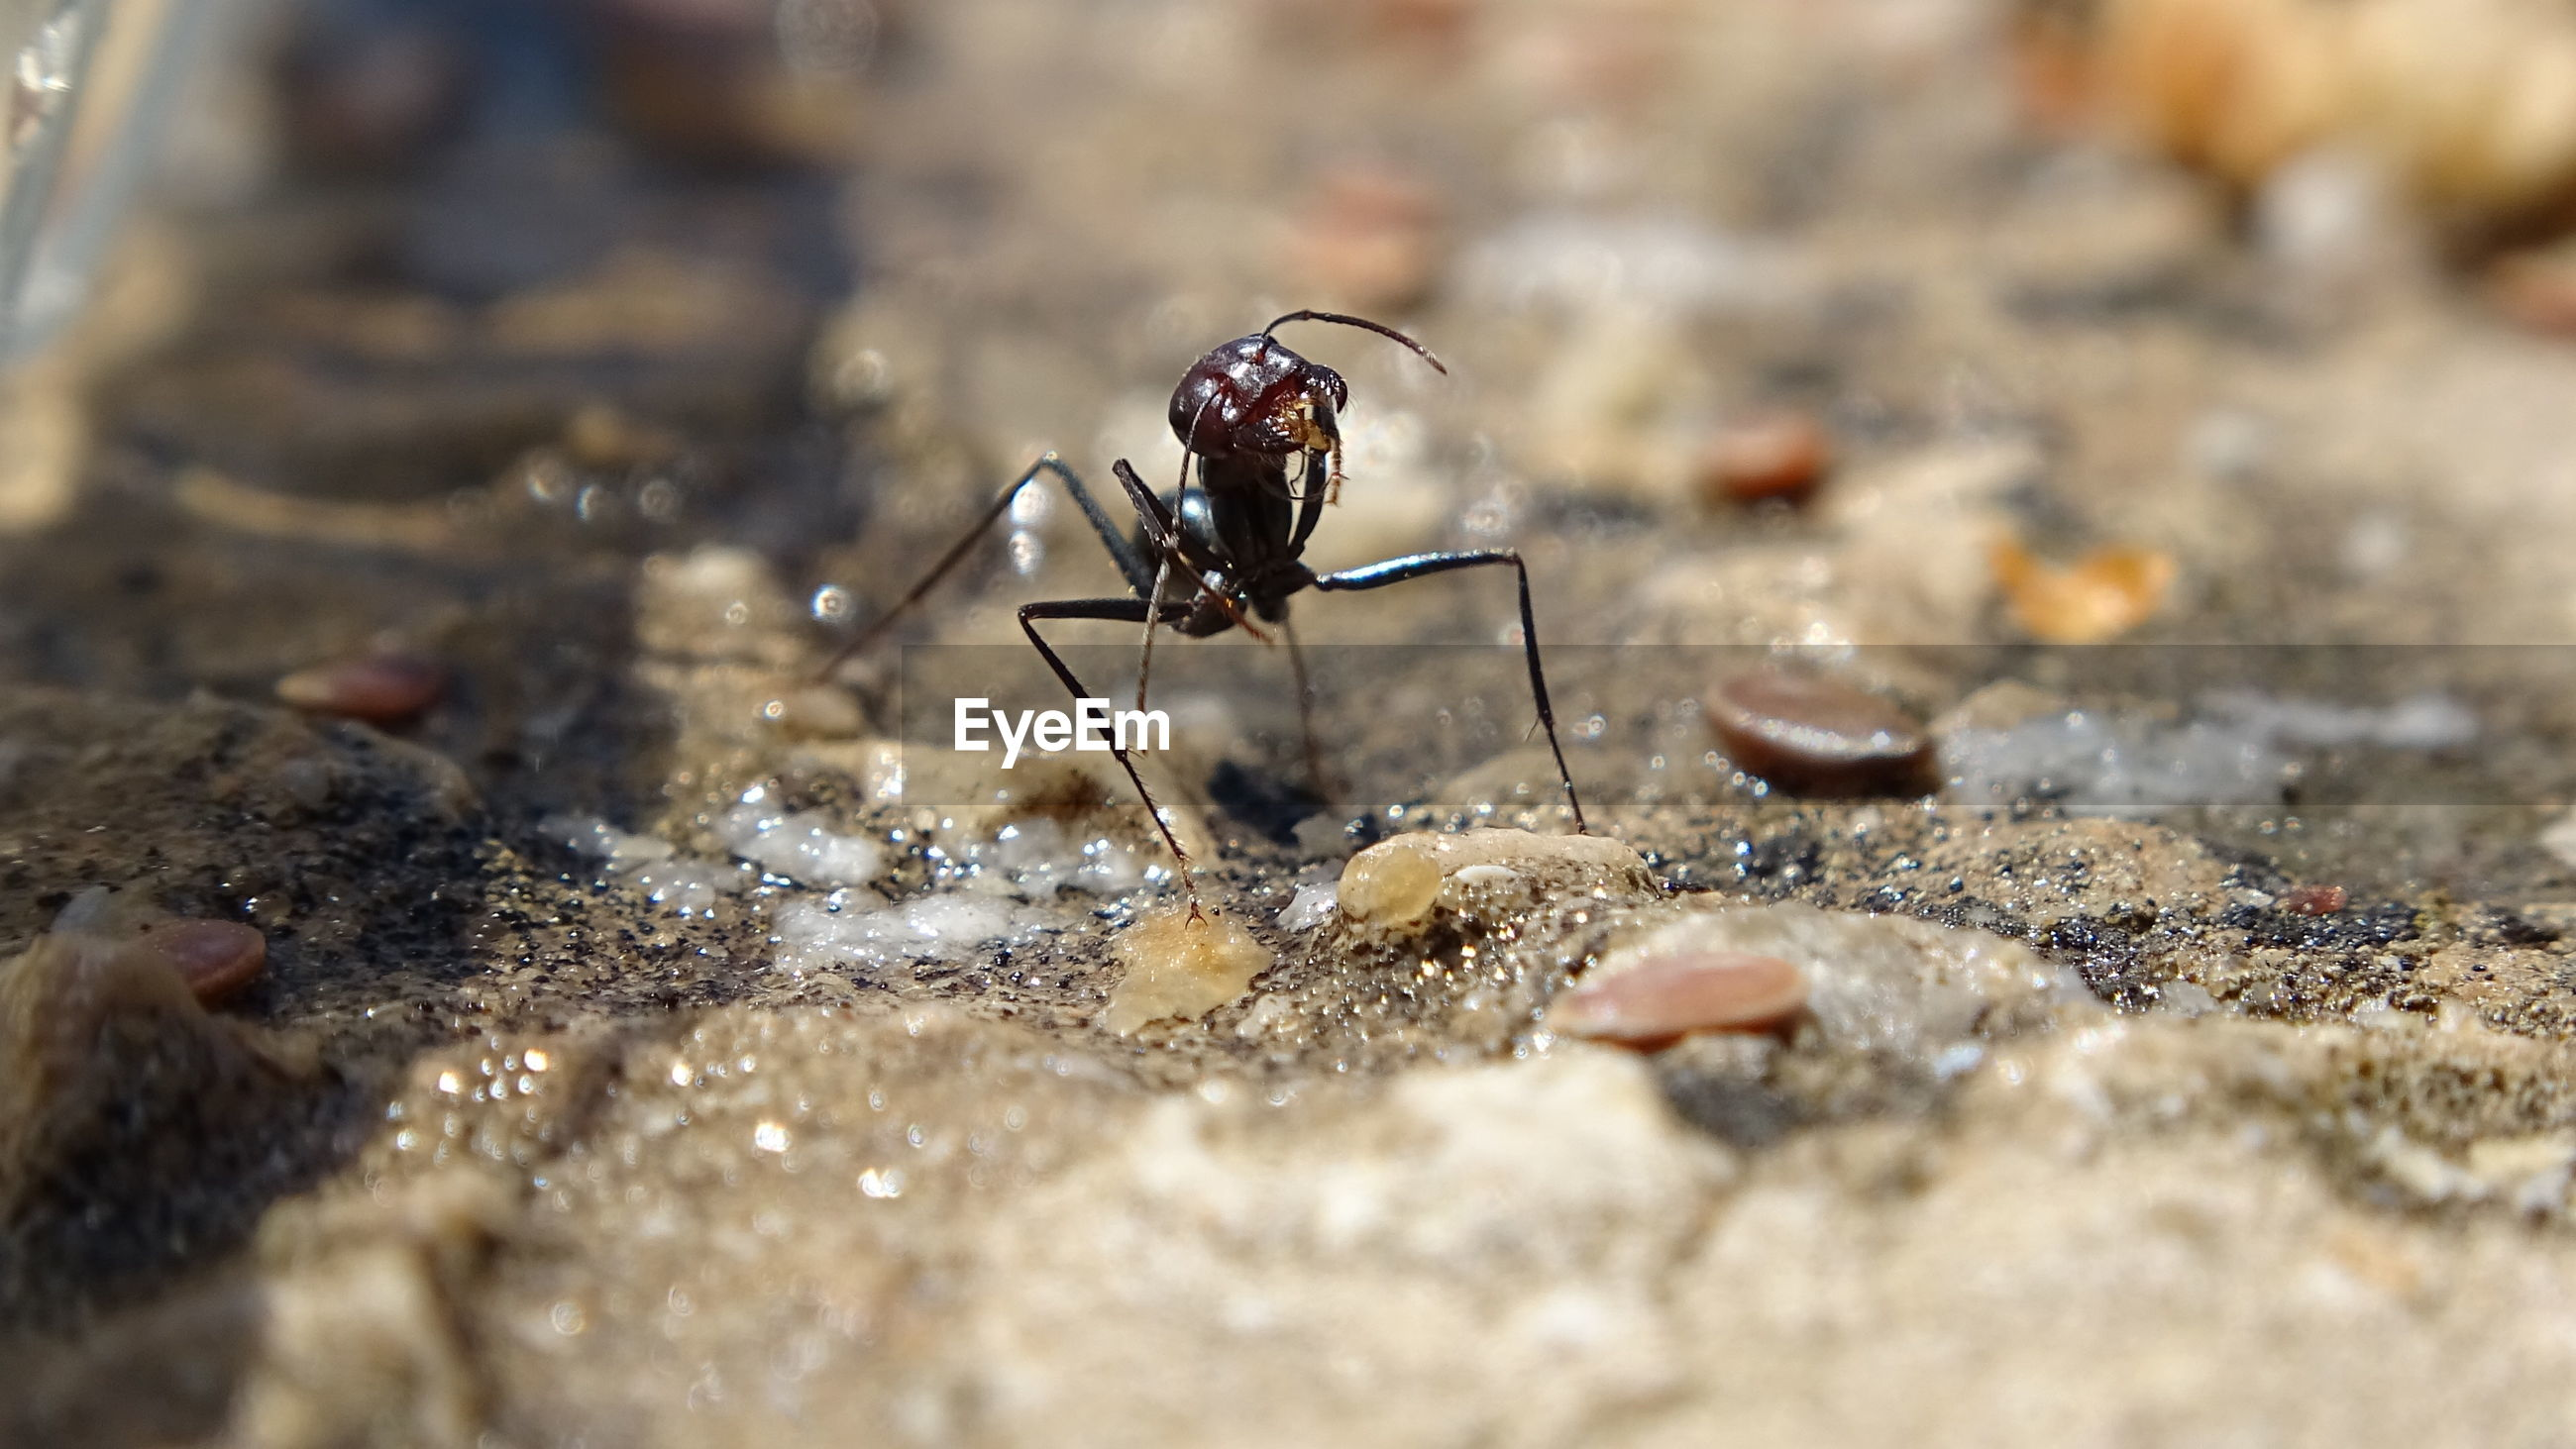 Ant cleaning herself after eating